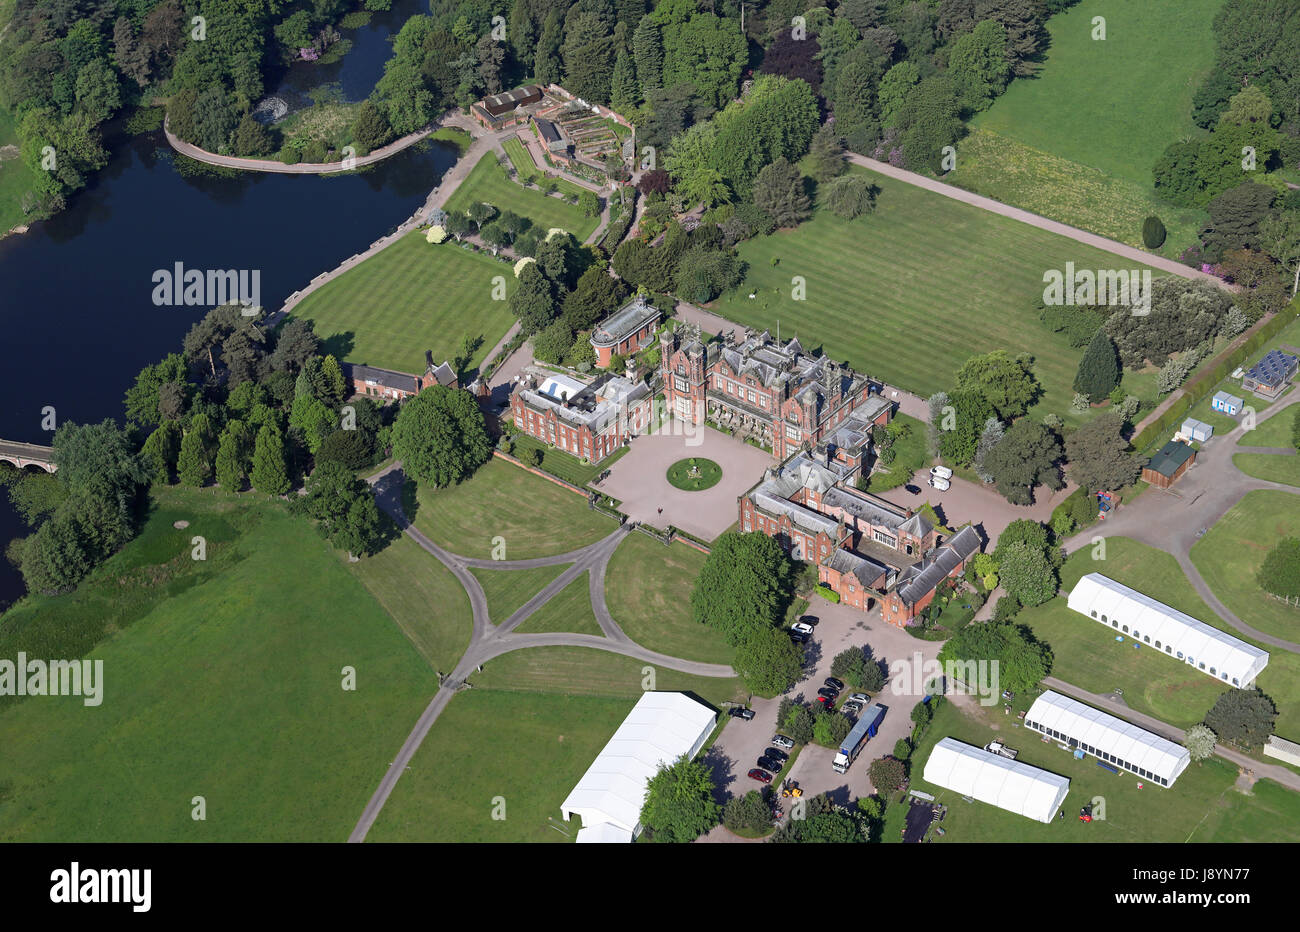 aerial view of Capesthorne Hall, Siddington, Cheshire, UK - Stock Image